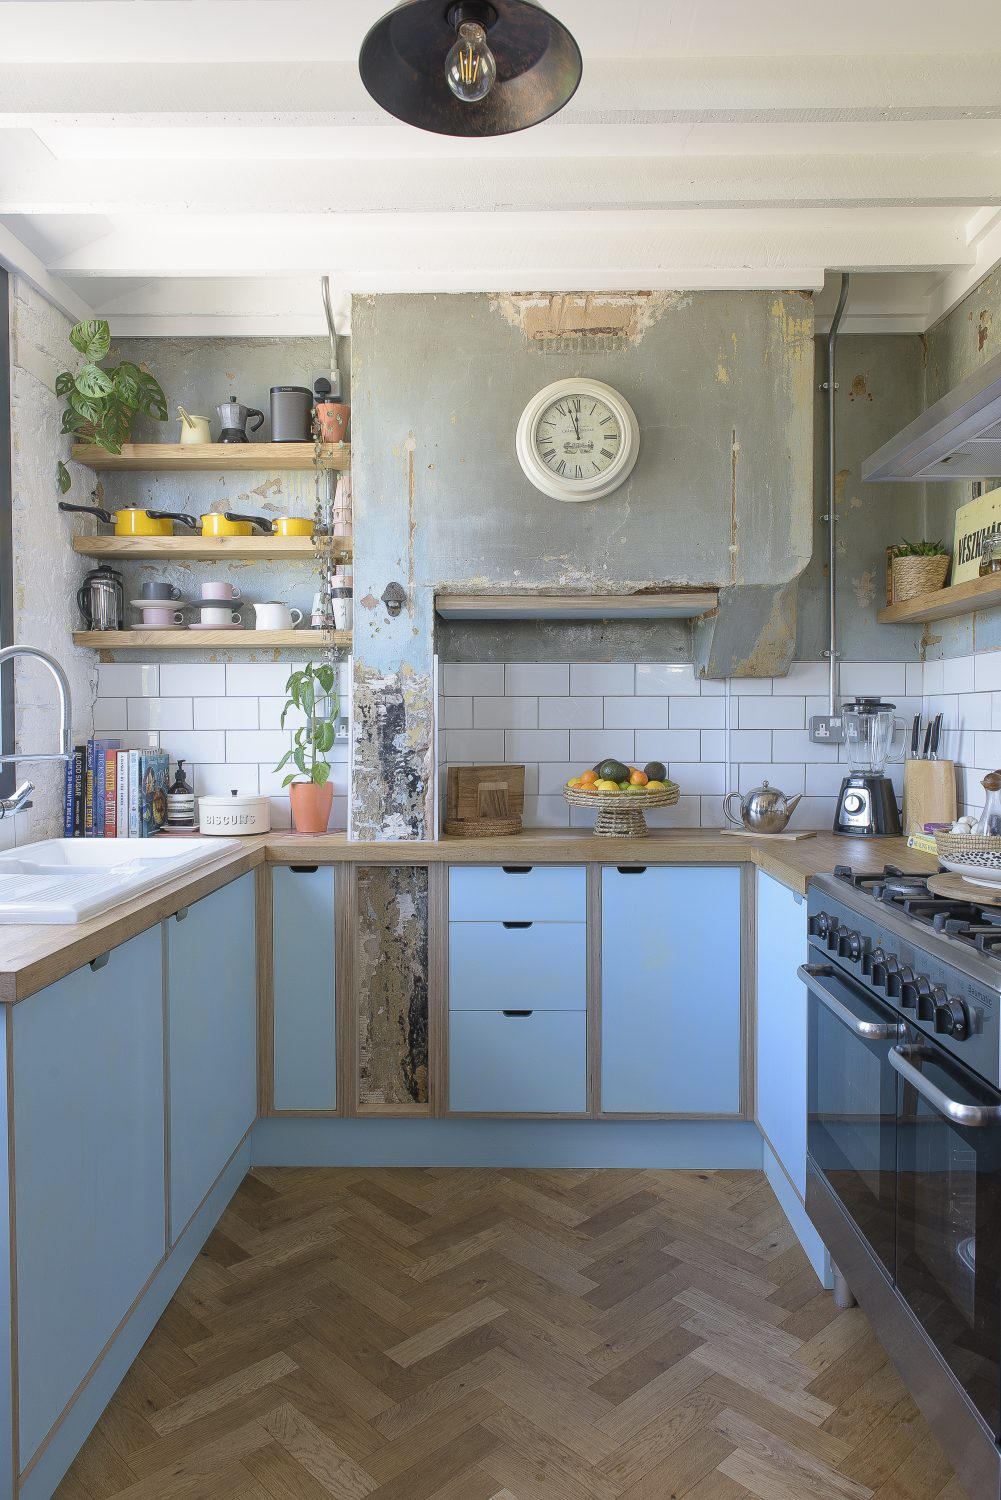 The kitchen is still in its original place in an extension at the back of the house. Cathe and John decided to keep the old plasterwork, where the bread oven used to be, and commissioned a new sky blue and wood contemporary kitchen with a herringbone parquet floor